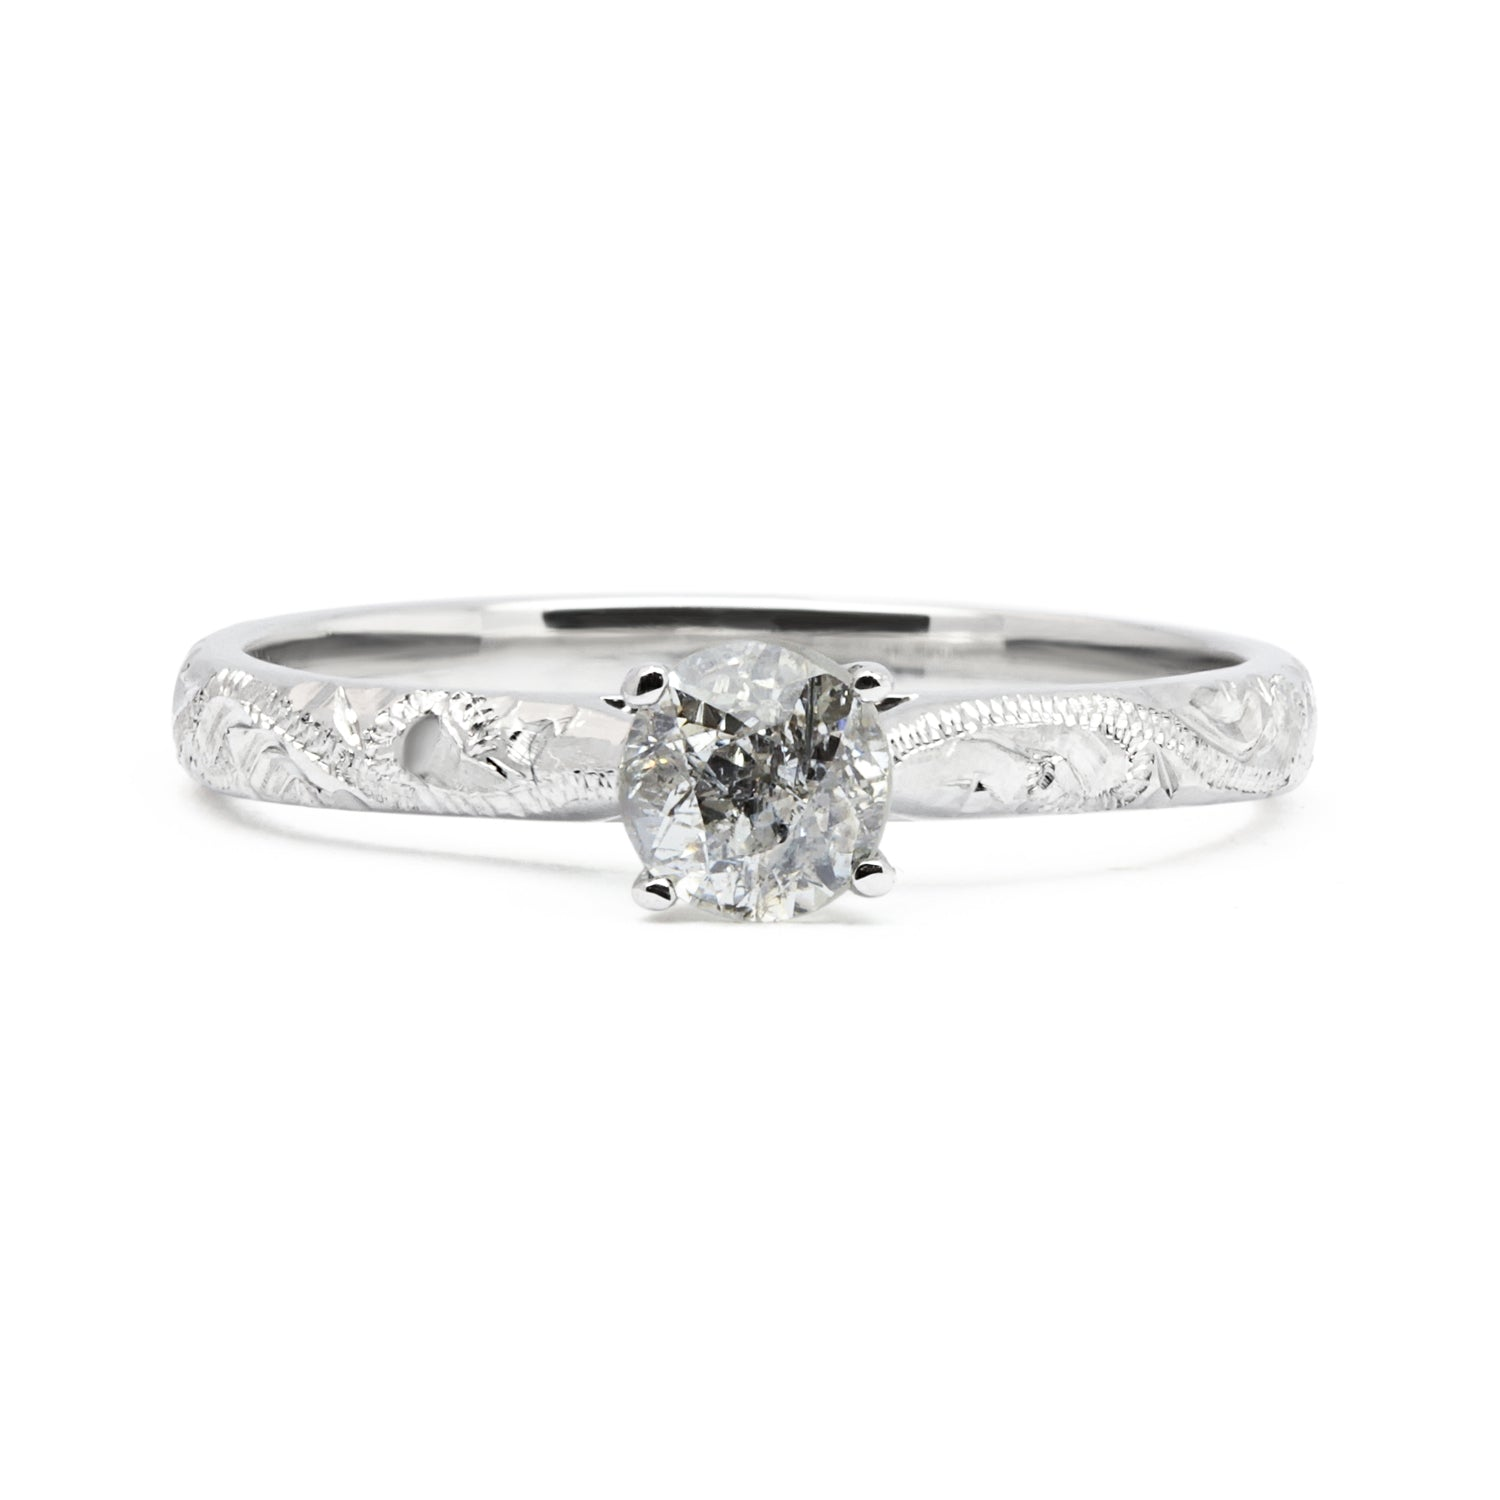 Lebrusan Studio Athena engagement ring with salt and pepper diamond and recycled white gold